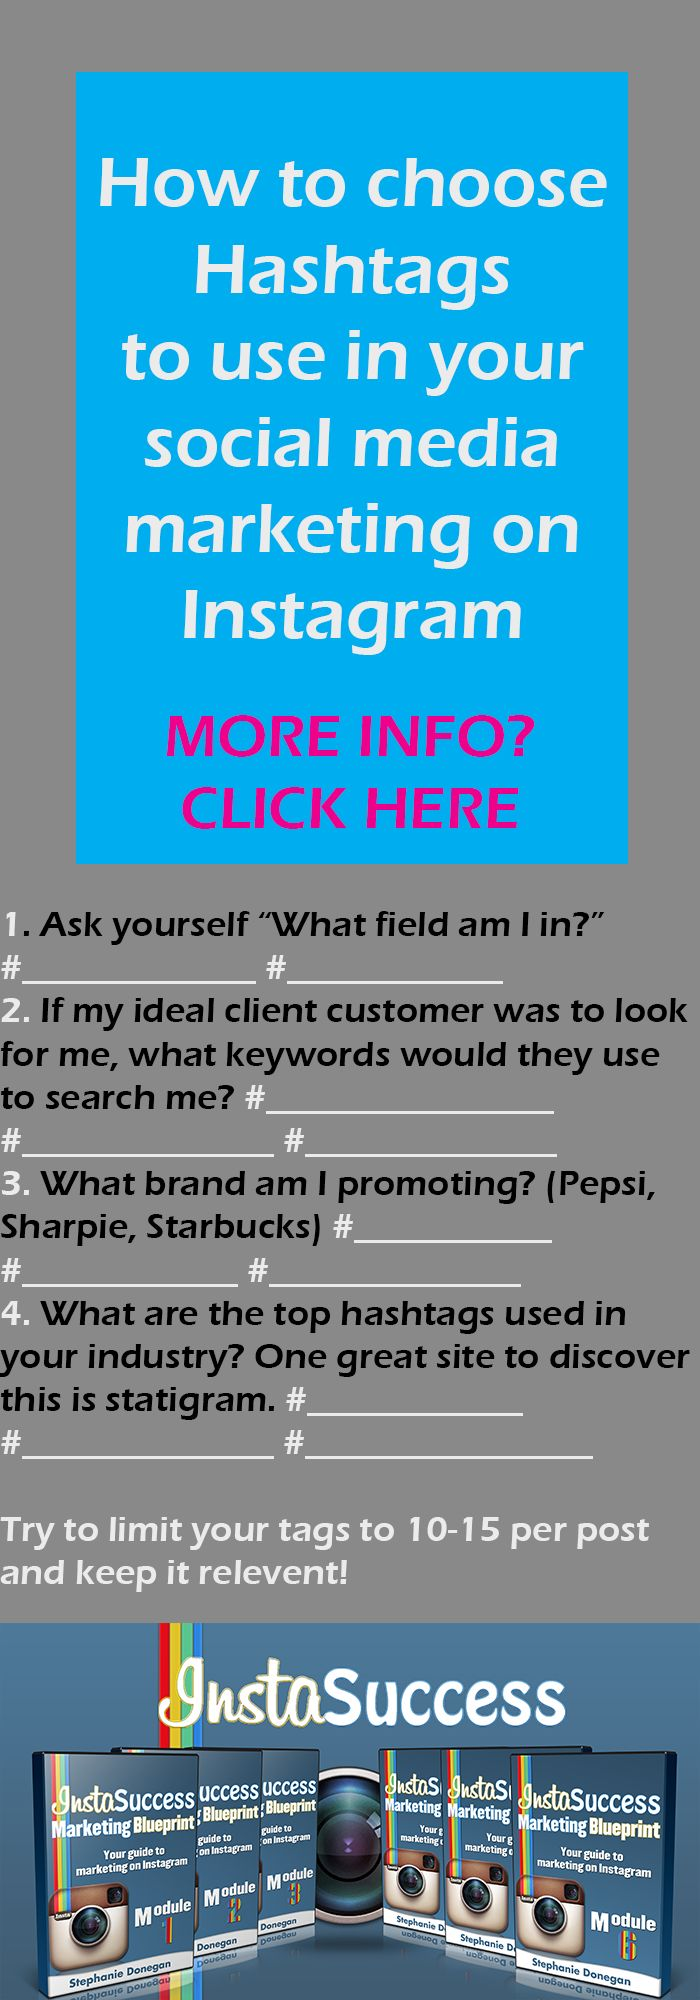 How to choose hashtags to use with your #socialmedia marketing. #instagram www.InstaSuccessMarketingBlueprint.com